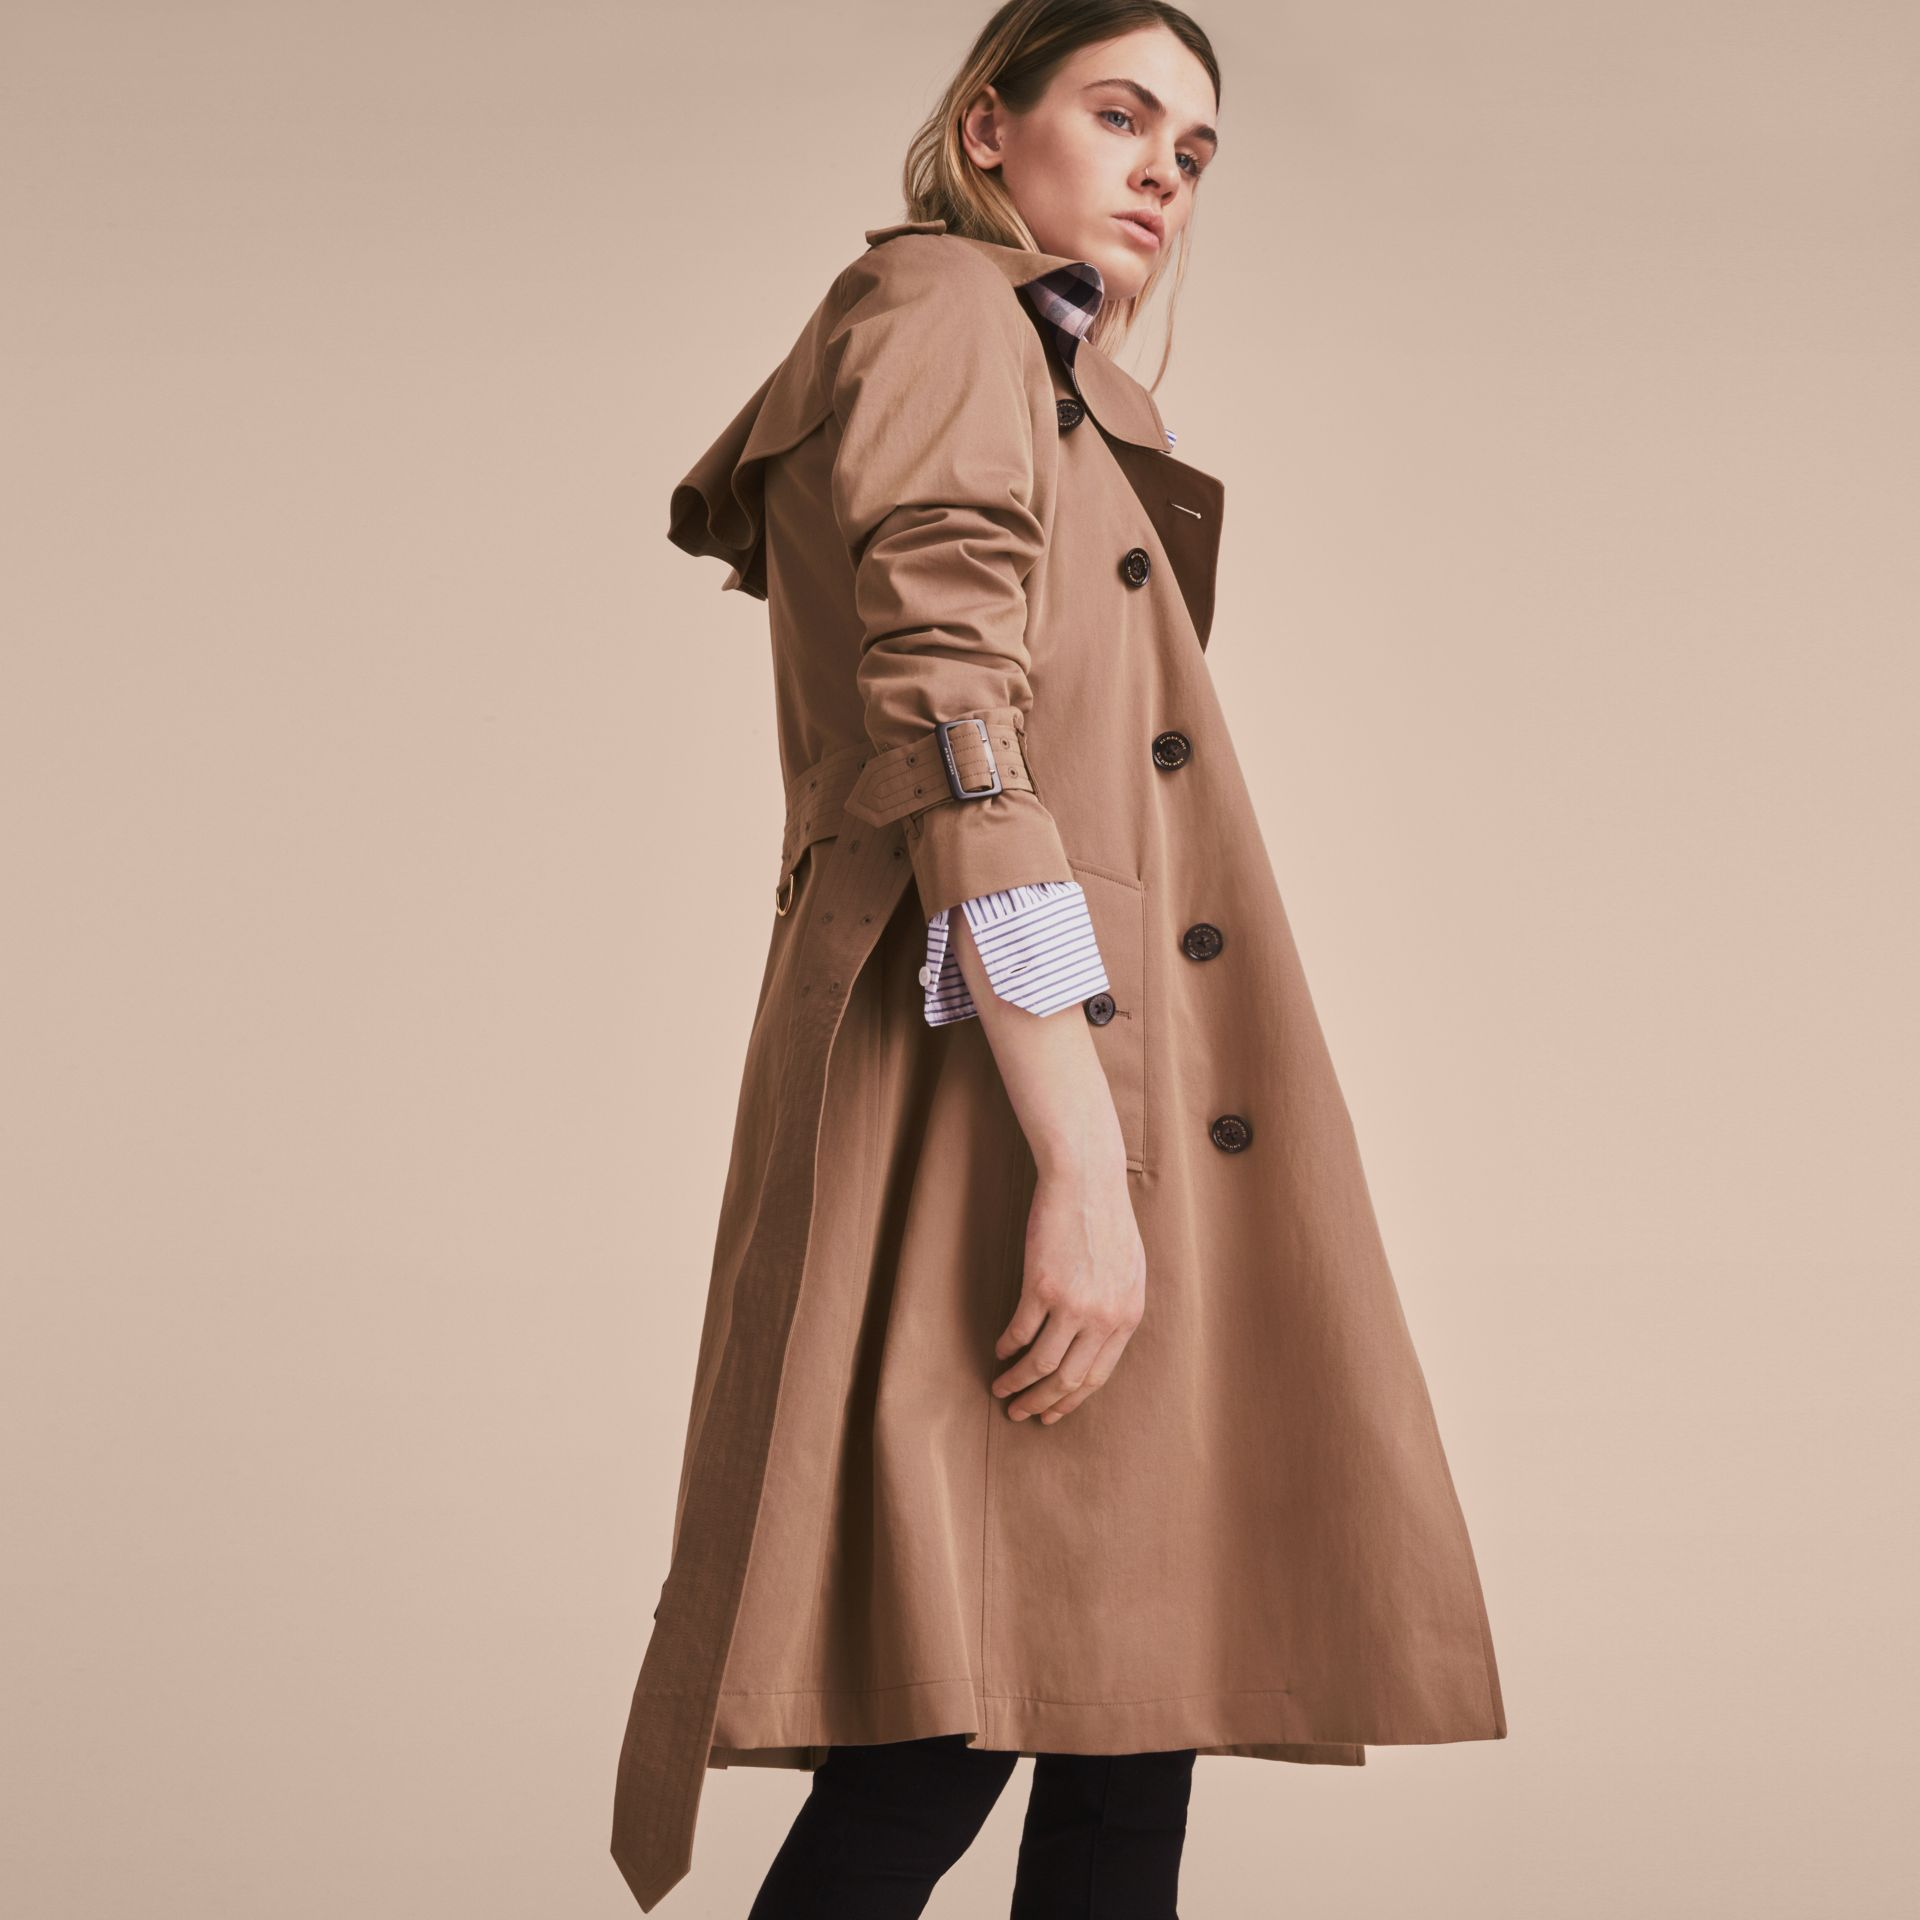 Tropical Gabardine Trench Coat with Ruffle Detail Taupe - gallery image 7